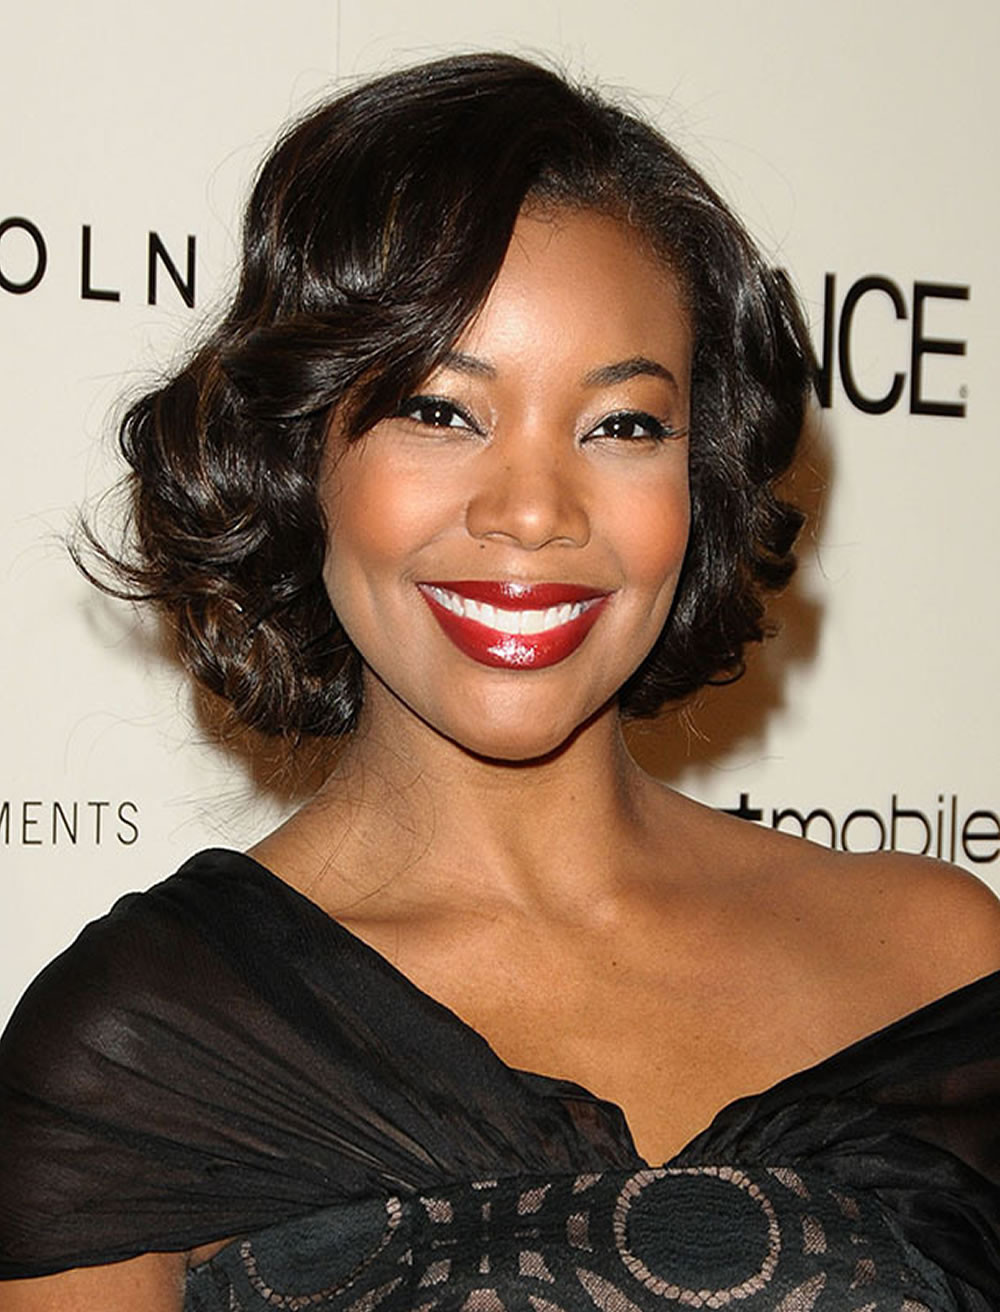 Bob Haircuts For Black Women  2020 Short Bob Hairstyles for Black Women – 26 Excellent